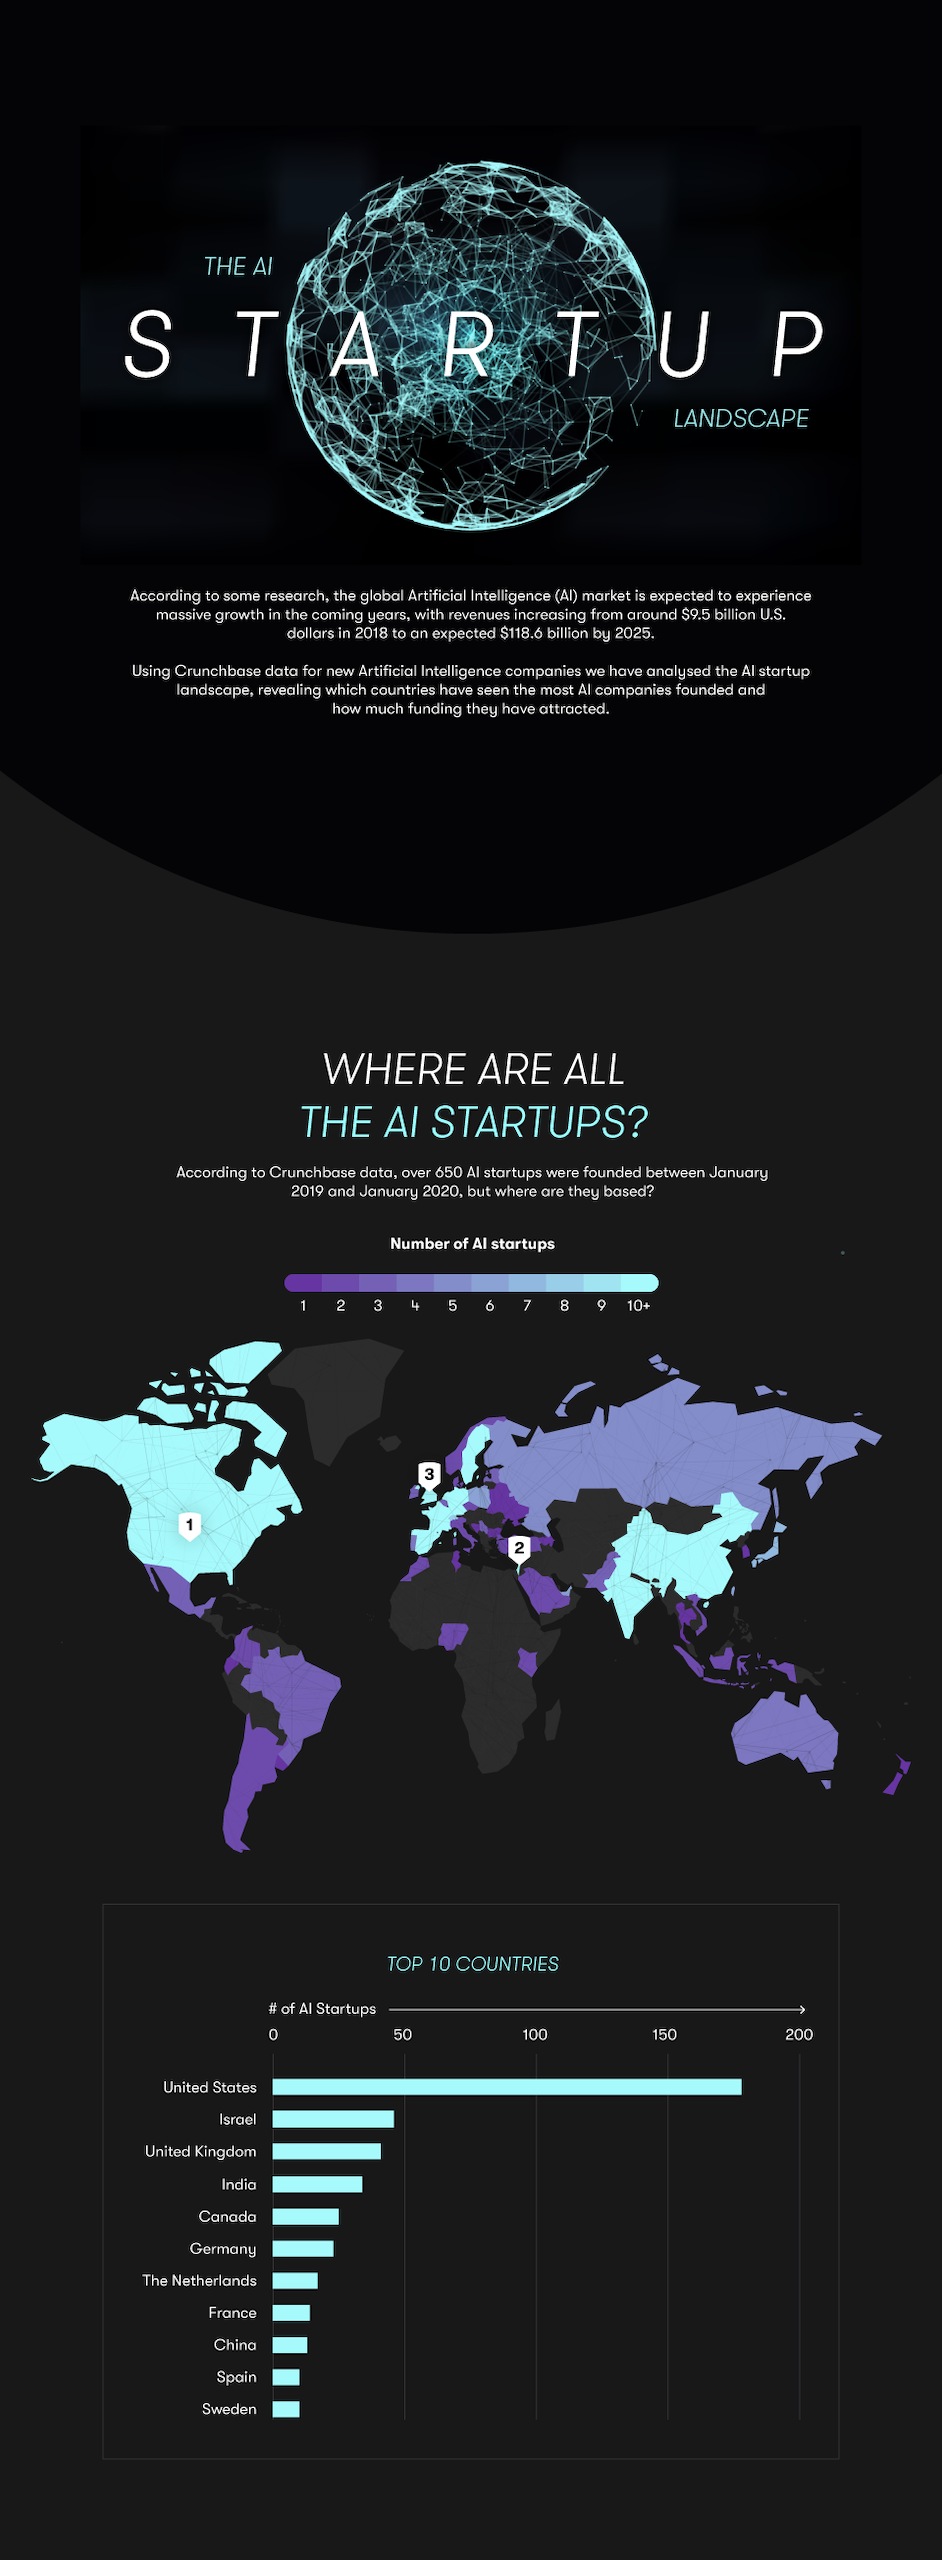 An infographic example showcasing the AI startup landscape.